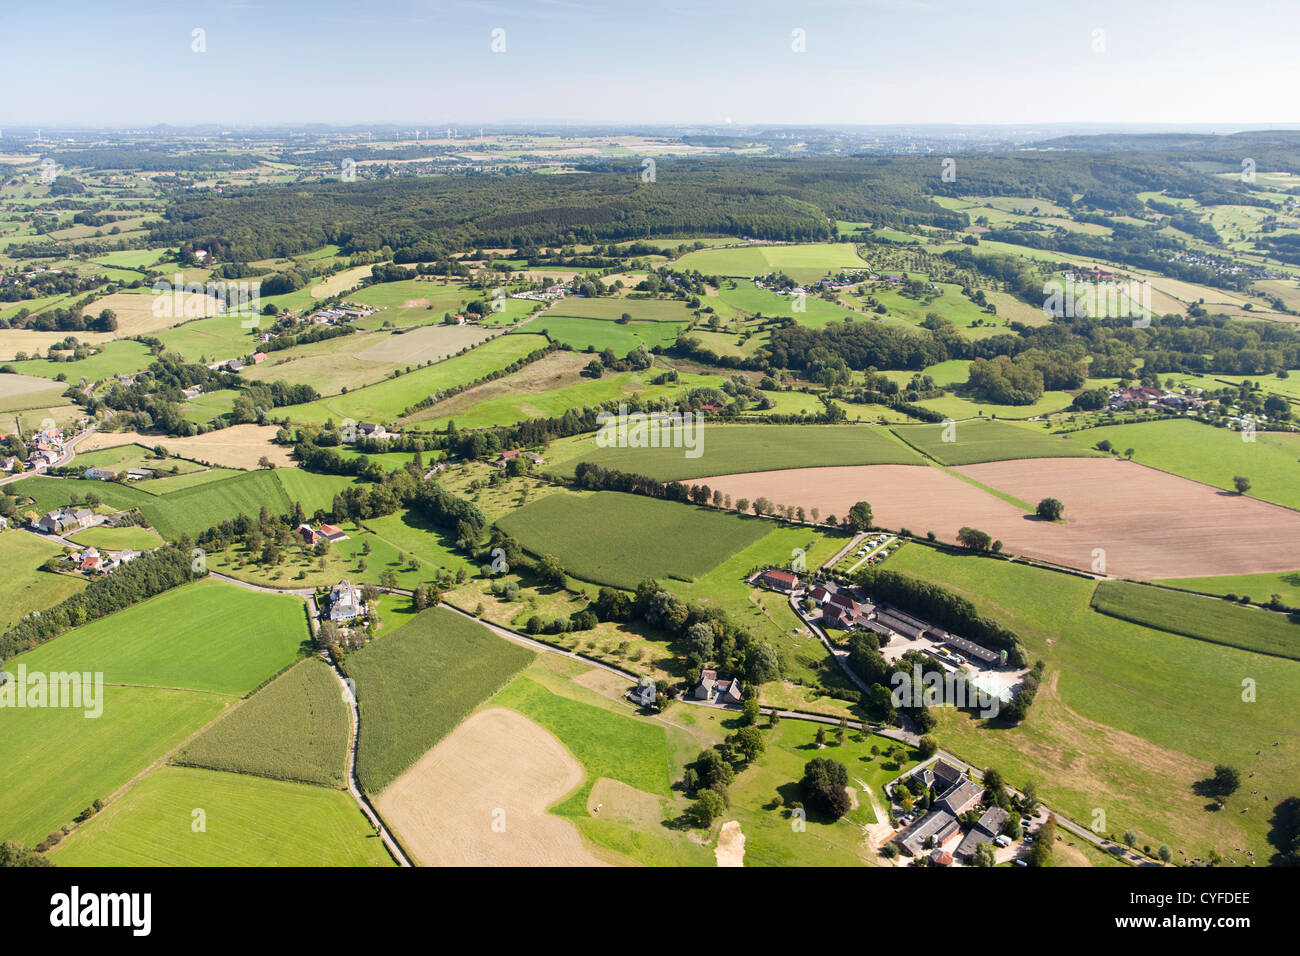 The Netherlands, Epen, Half timbered farms and farmland. Aerial. - Stock Image